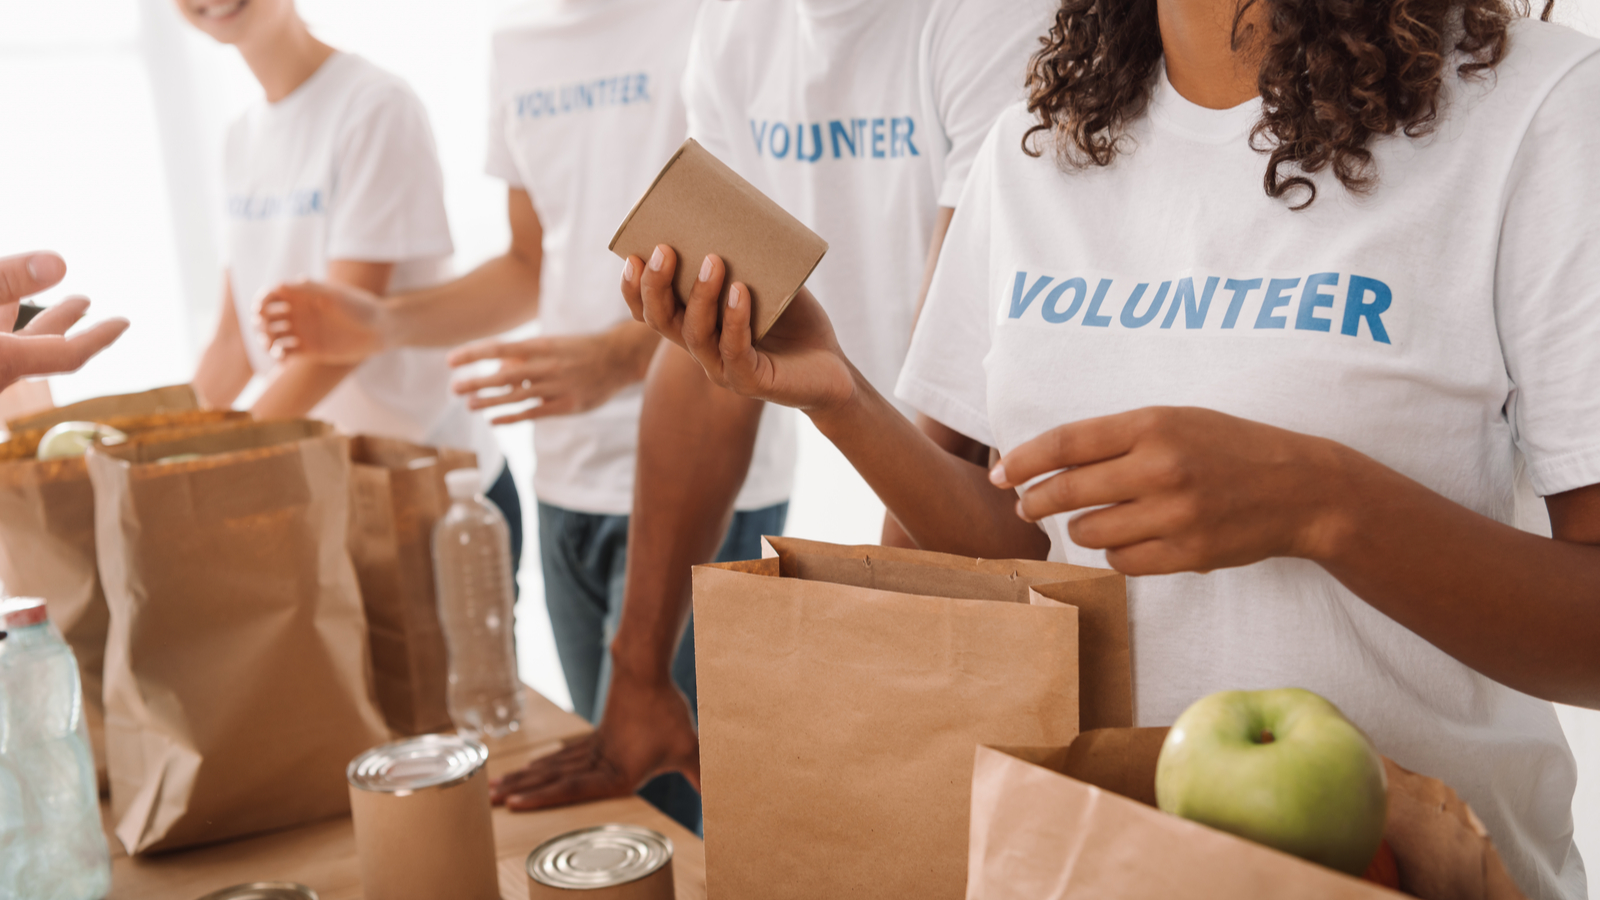 Image shows charity organization volunteers. The right tools for nonprofits are essential for these heroes of the charitable industry.